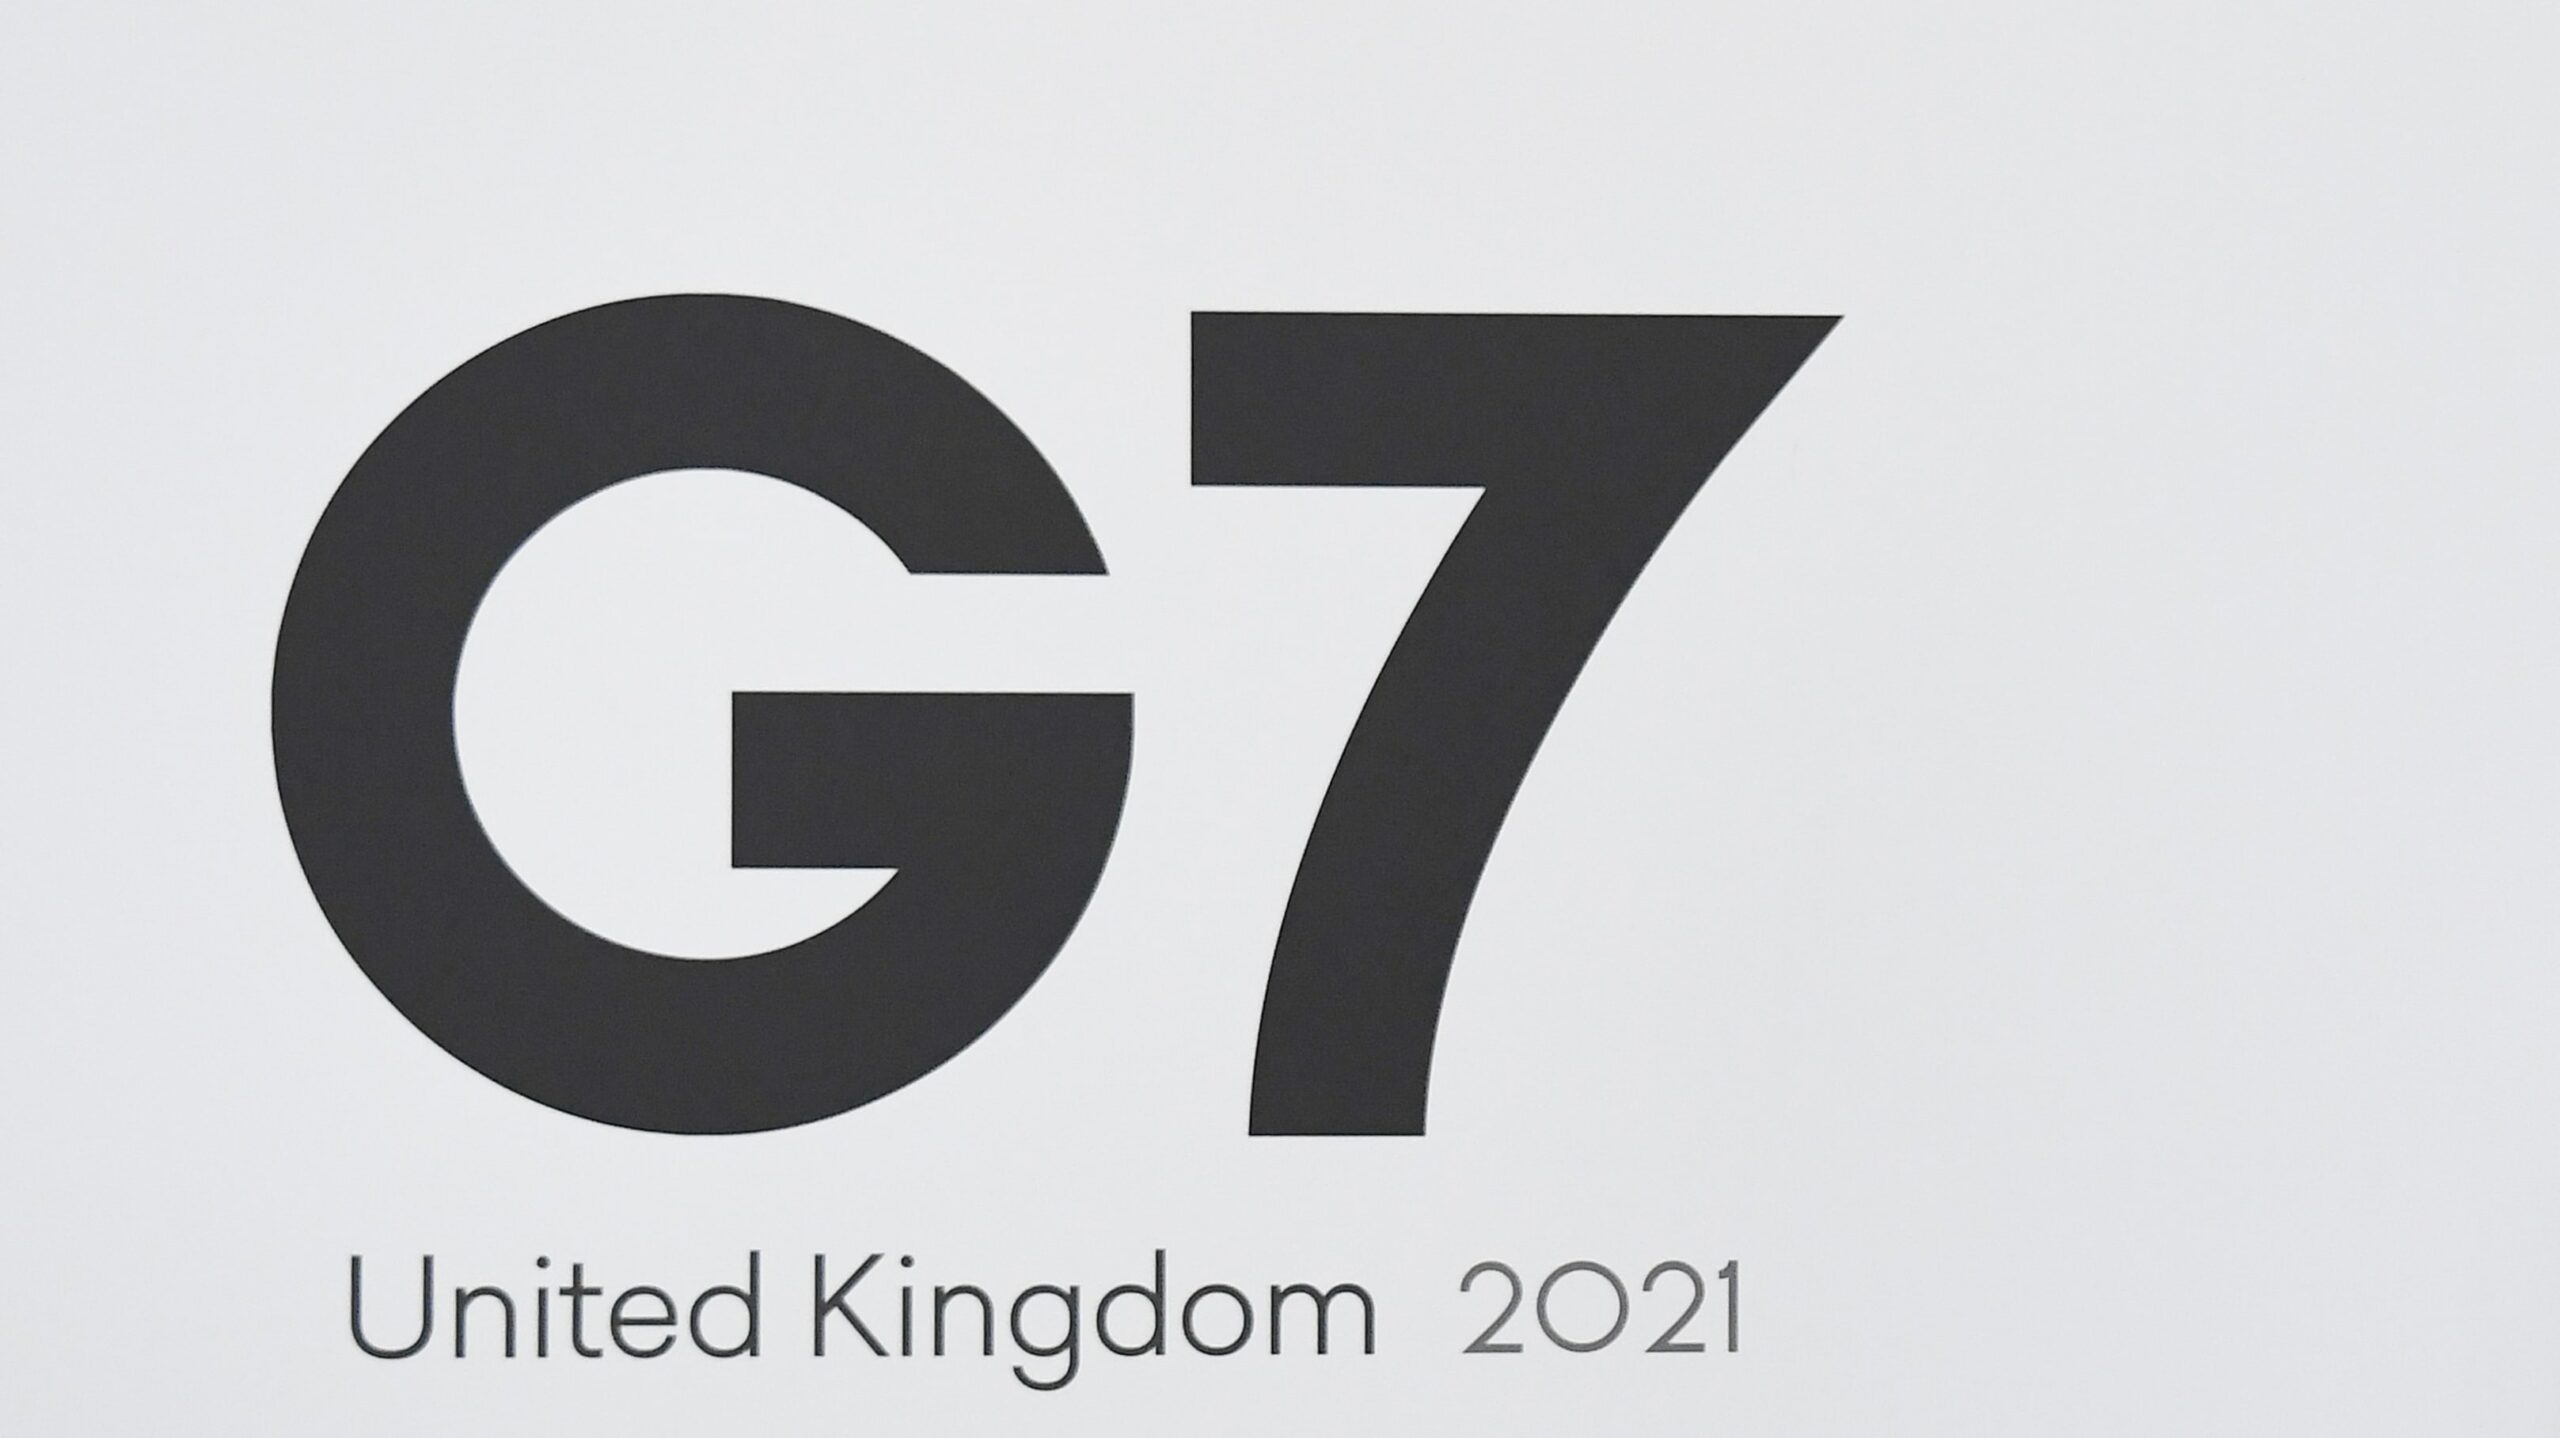 G7 Tax Plans: Targeting World's Richest After 40% Wealth Growth